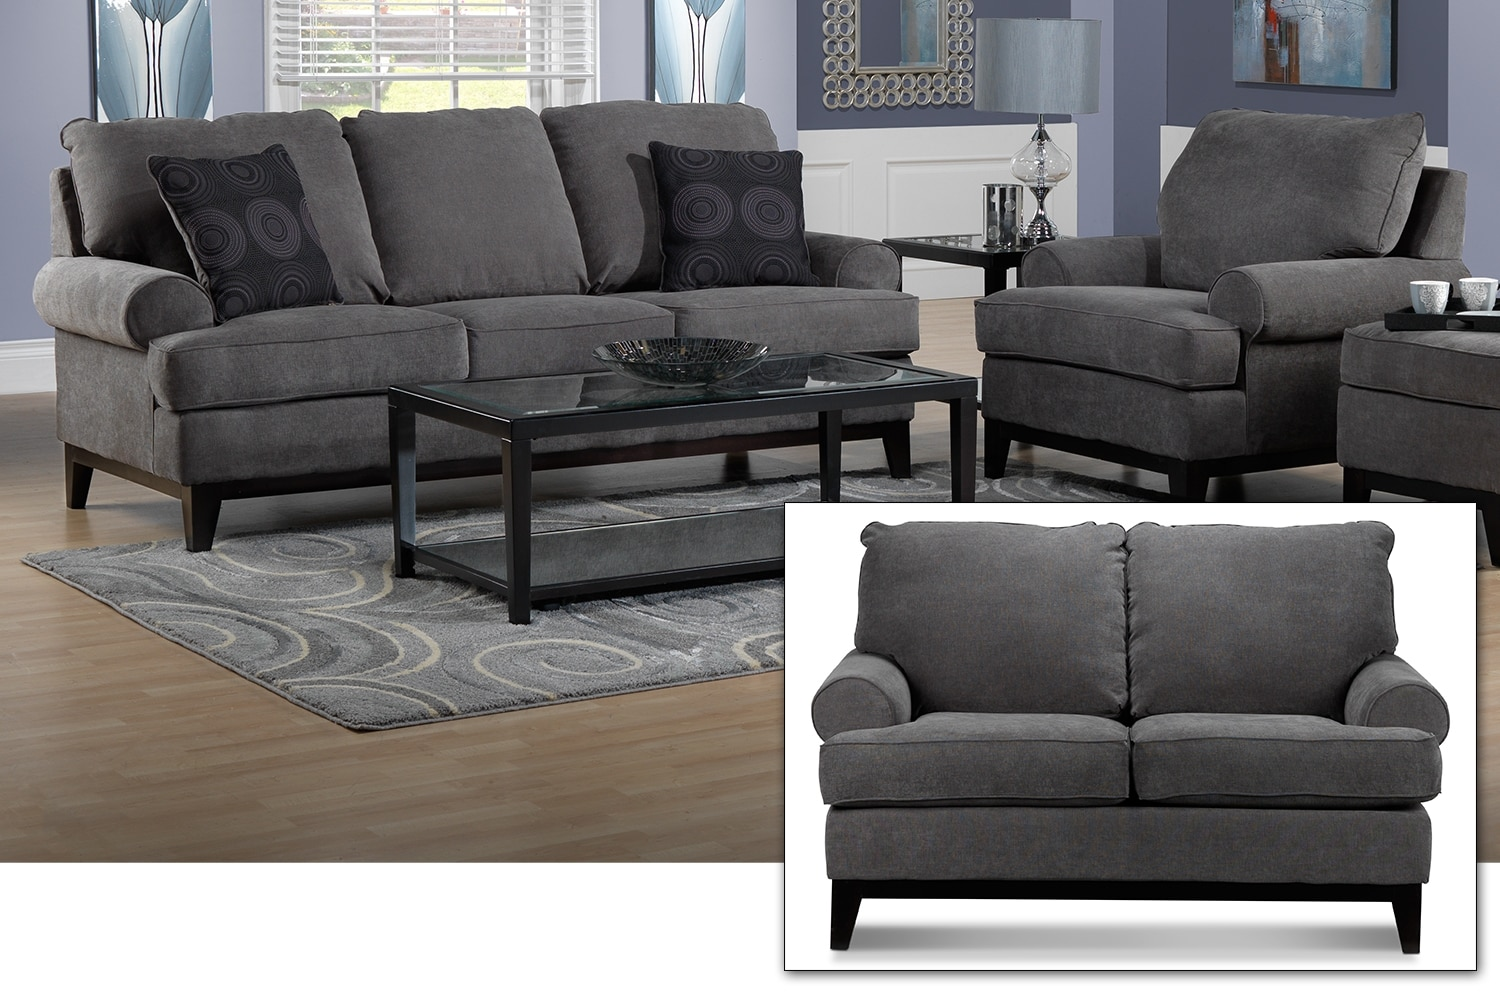 Crizia Sofa, Loveseat and Chair Set - Dark Grey